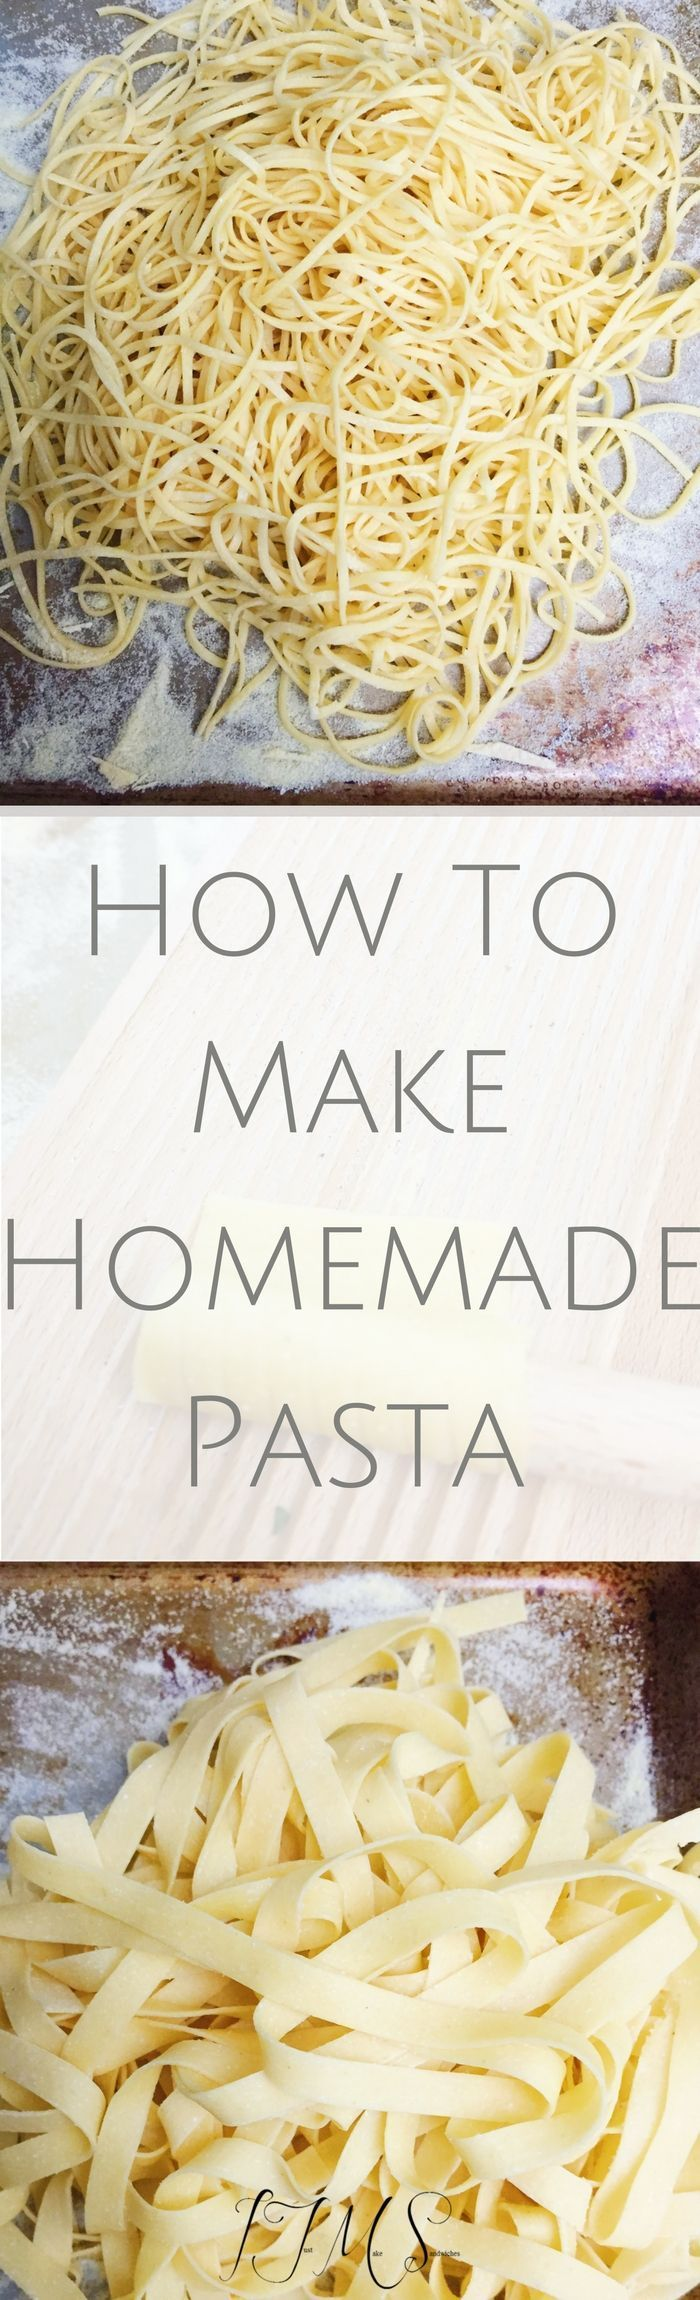 546 best Pasta images on Pinterest | Recipes, Fresh pasta and ...